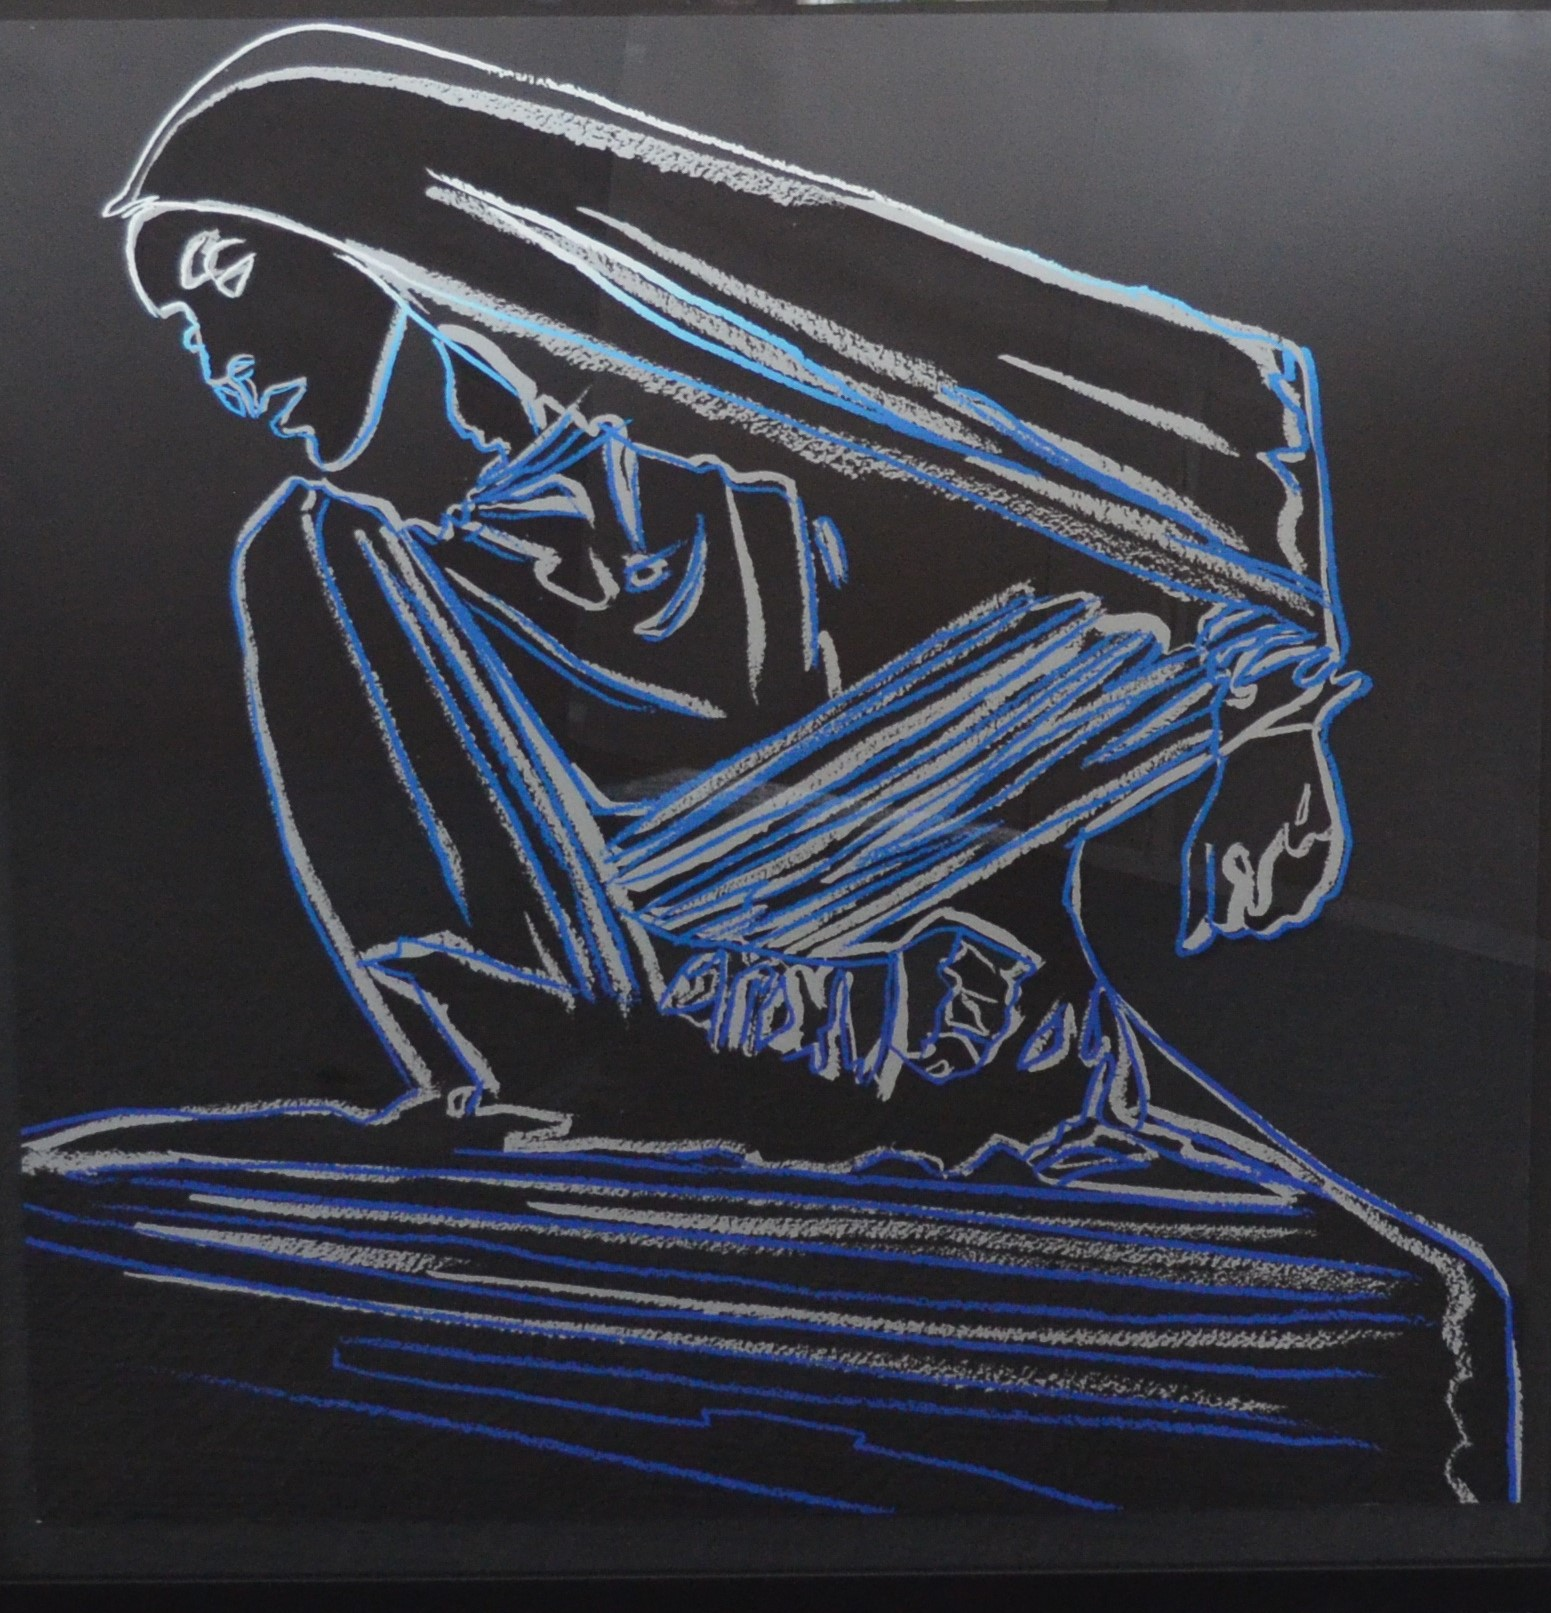 print by Andy Warhol, titled Lamentation, of a woman doing a dance move